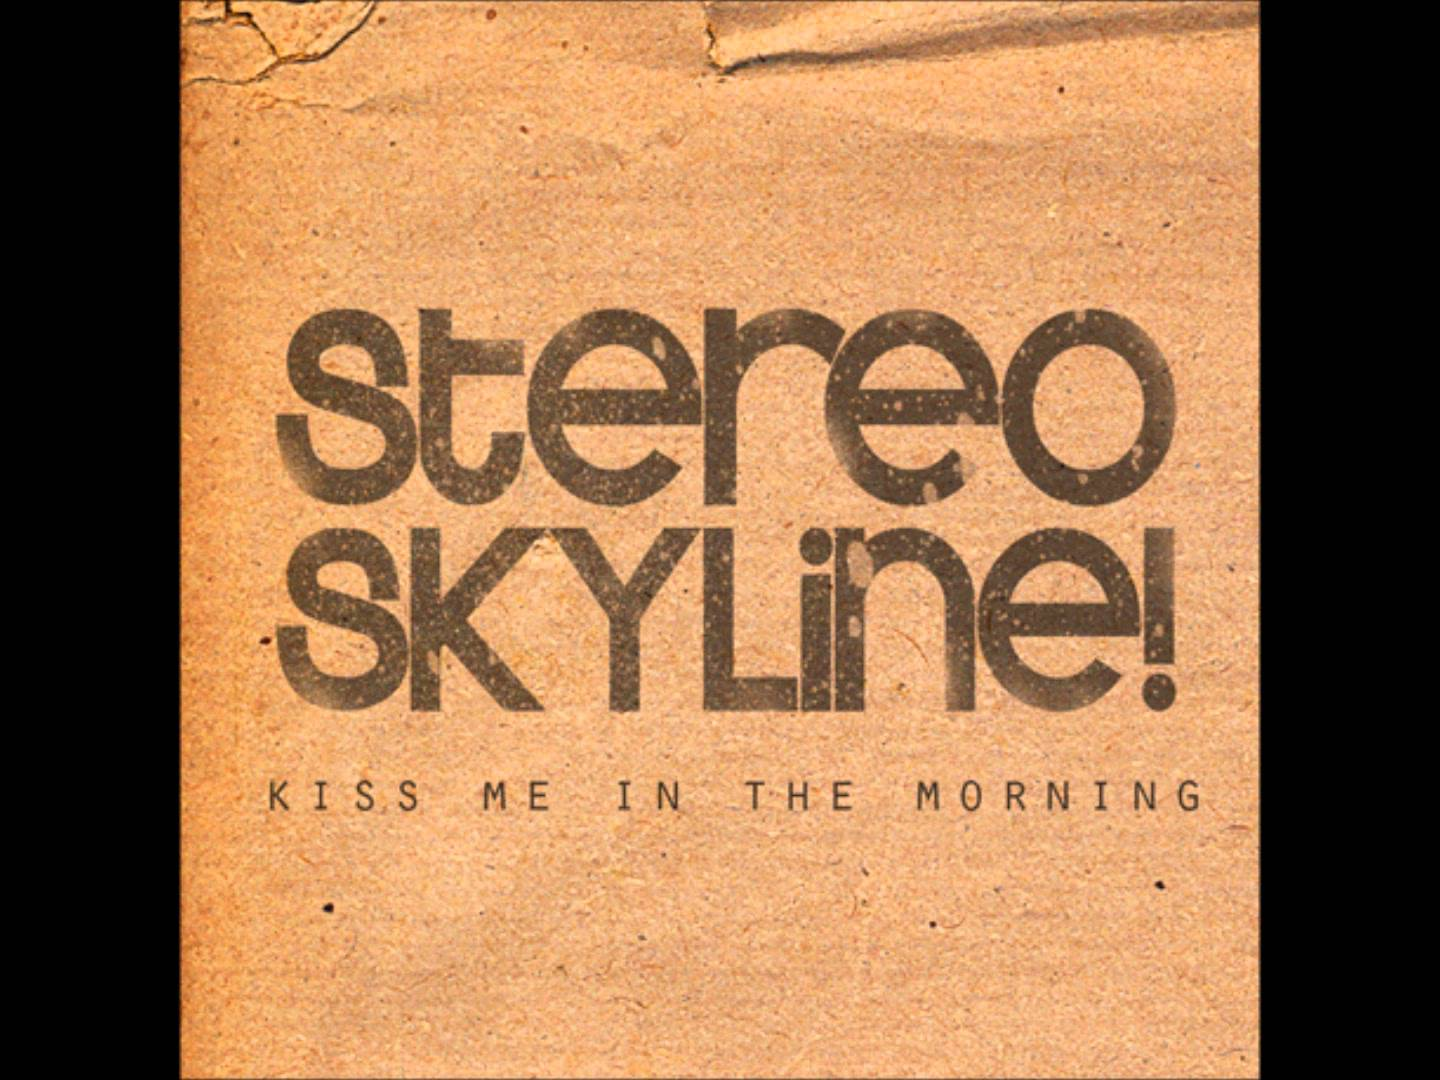 Kiss Me In The Morning - Stereo Skyline